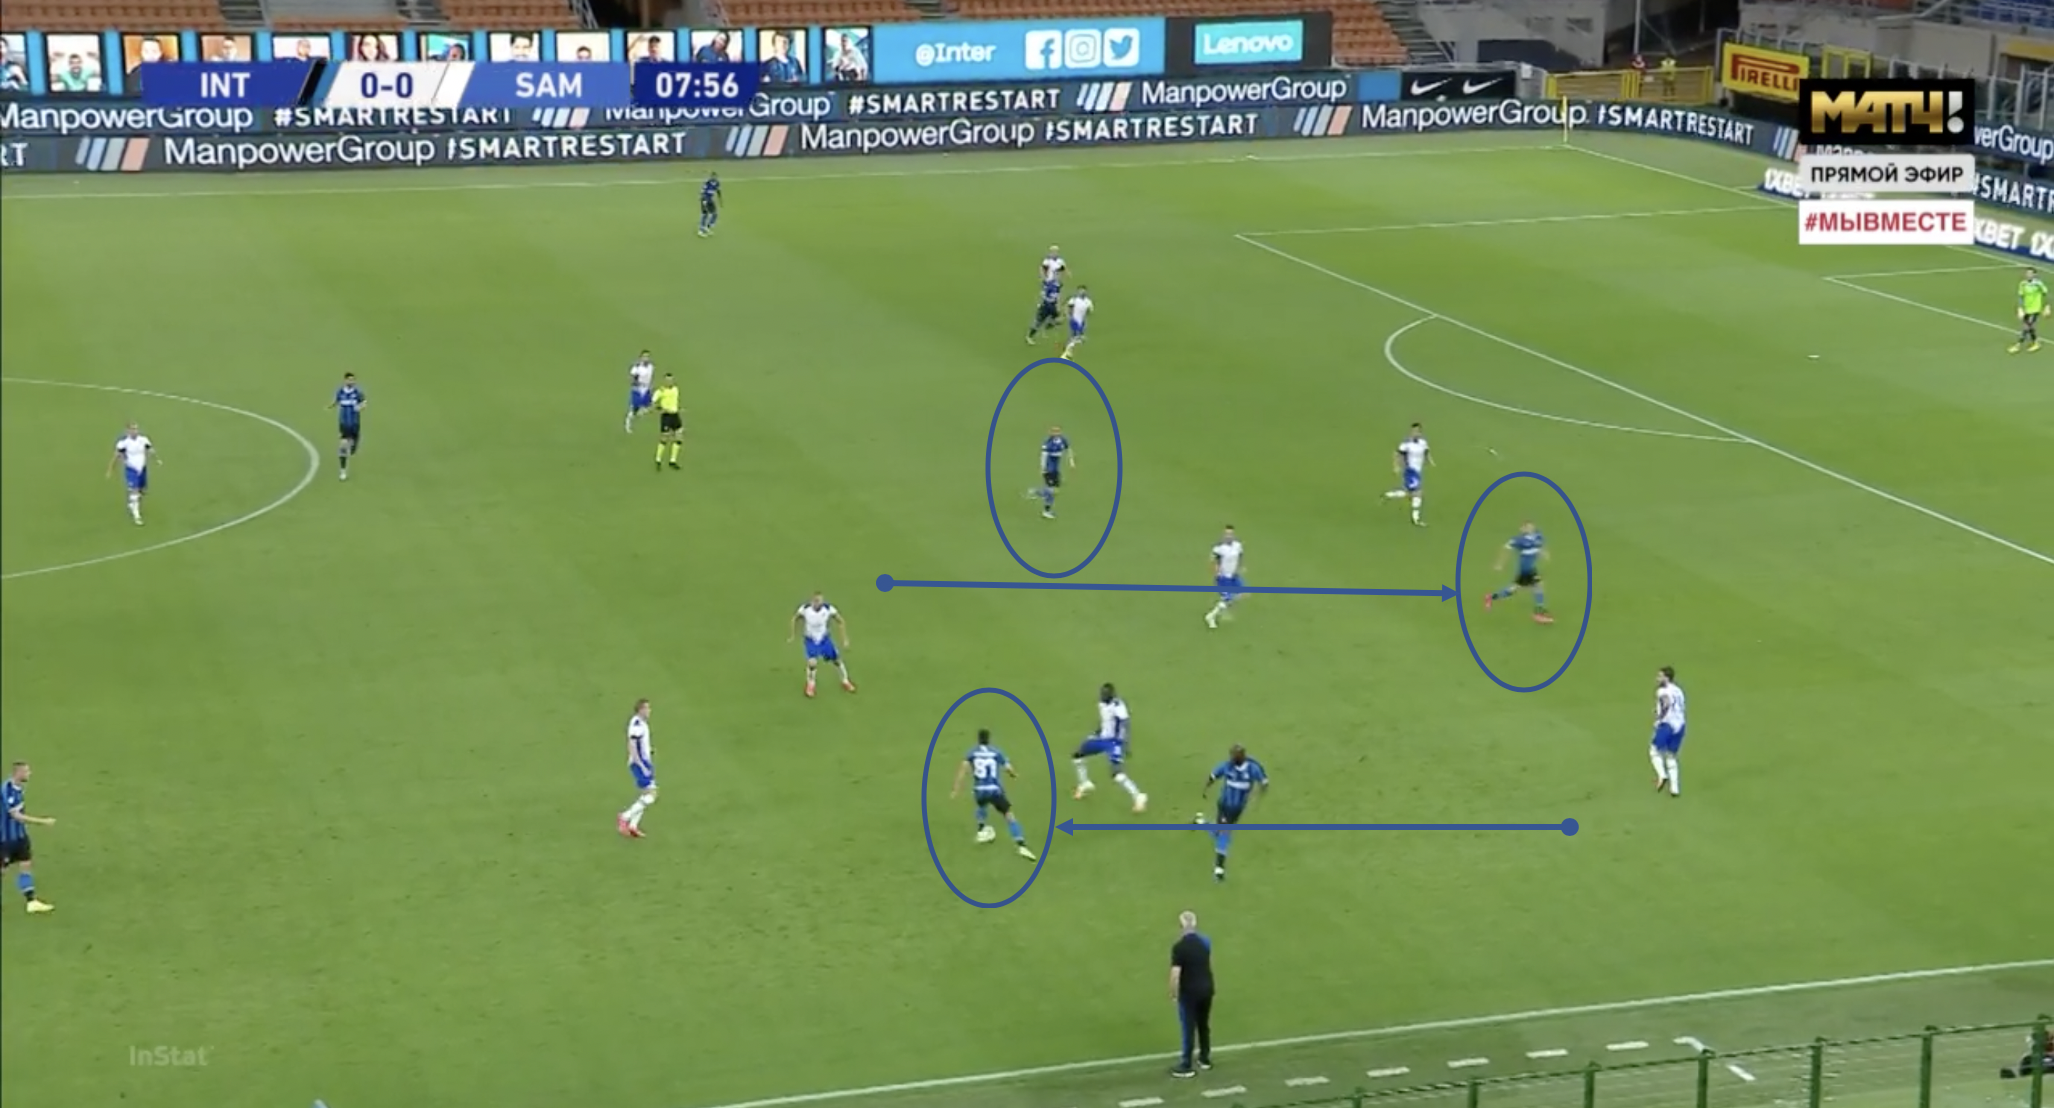 Serie A 2019/20 – Inter Milan vs Sampdoria, tactical analysis tactics